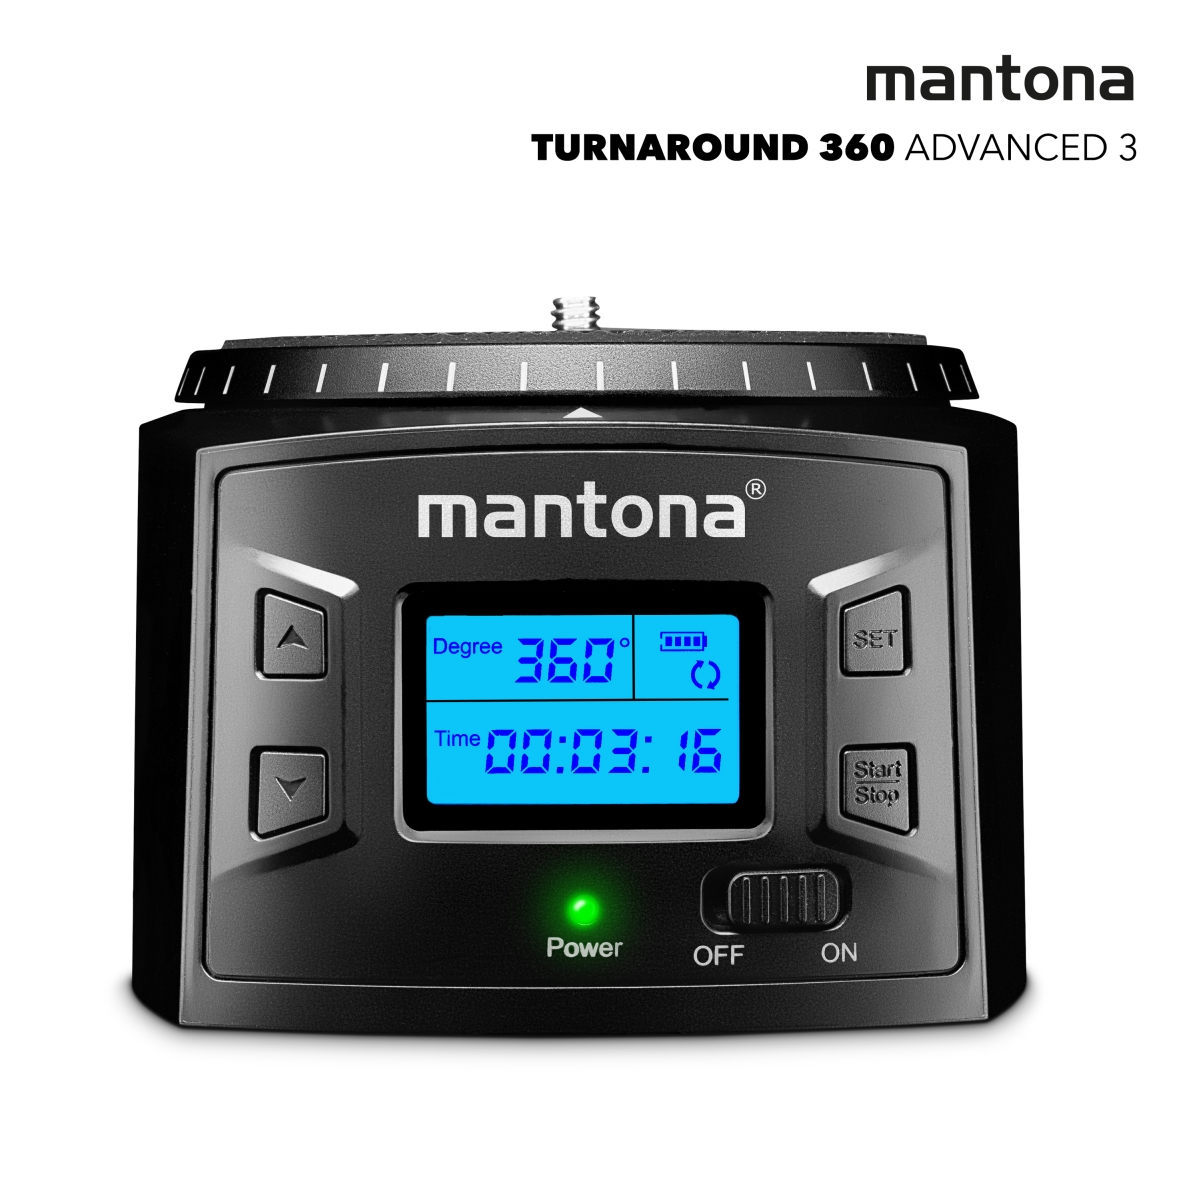 Mantona Turnaround 360 Advanced 3 - electric panning head